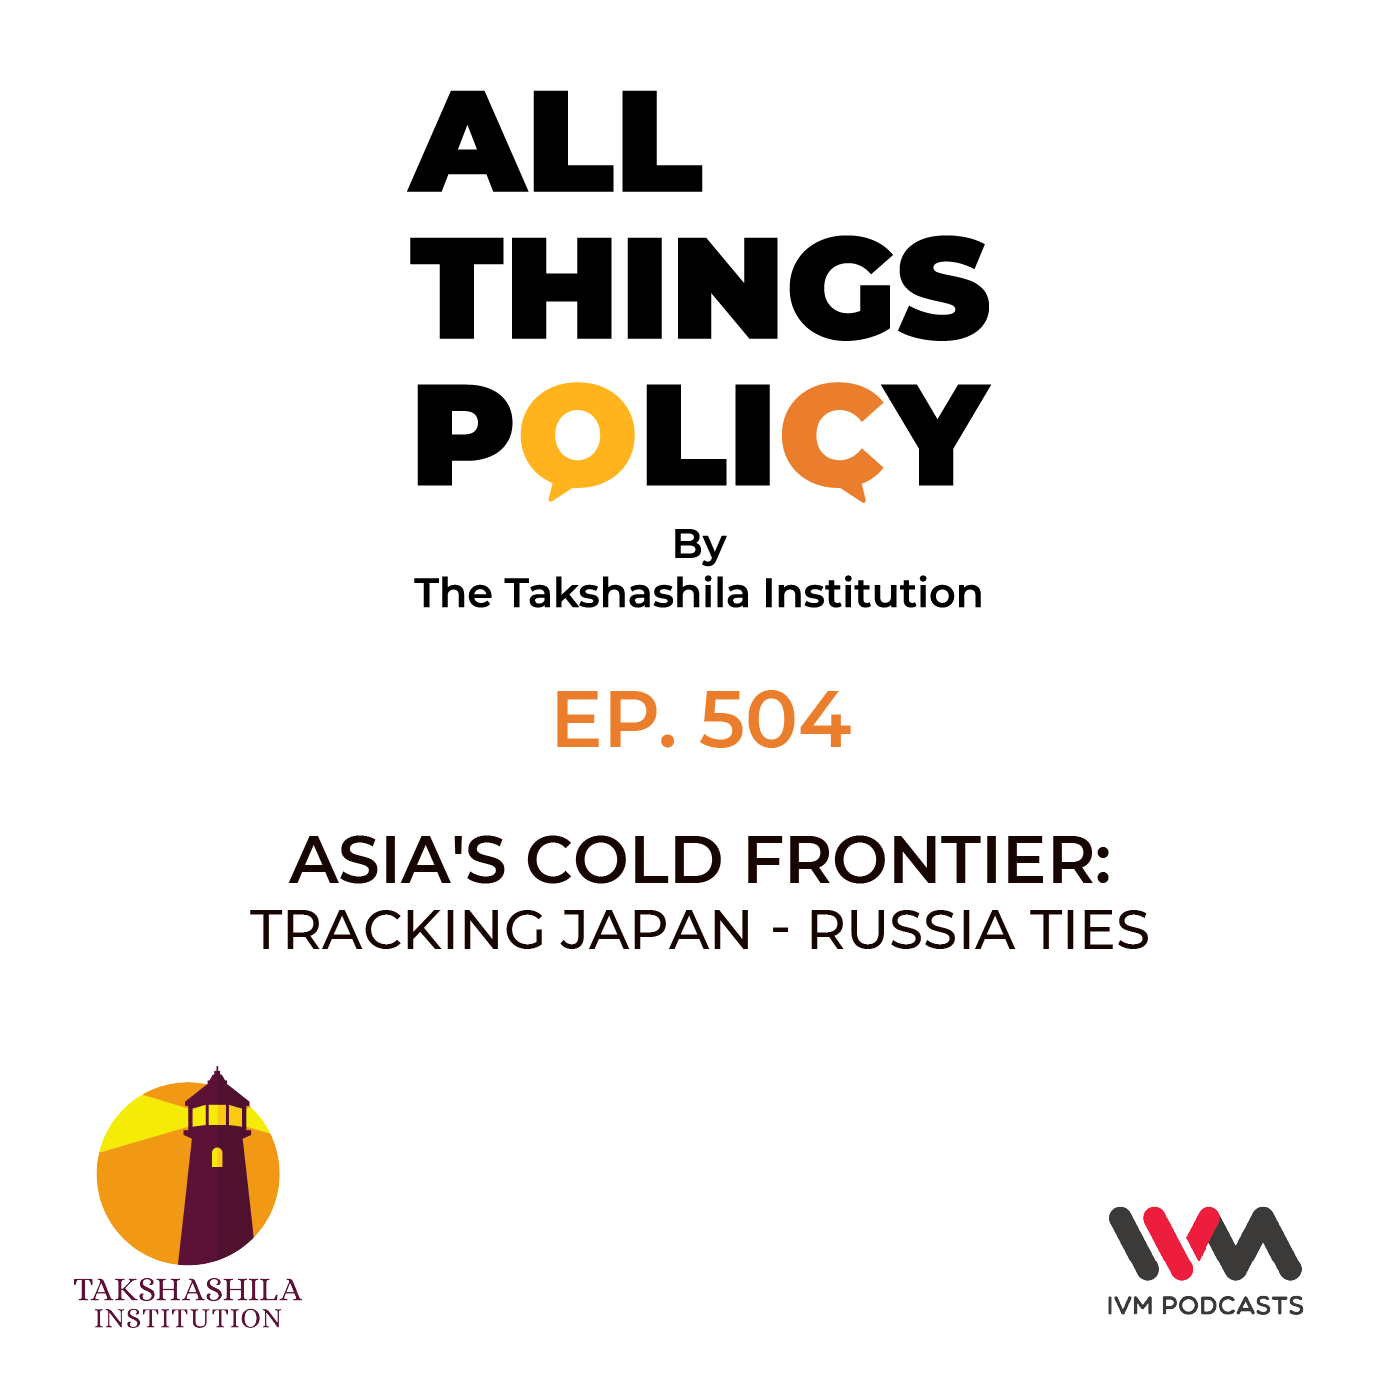 Ep. 504: Asia's Cold Frontier: Tracking Japan - Russia Ties